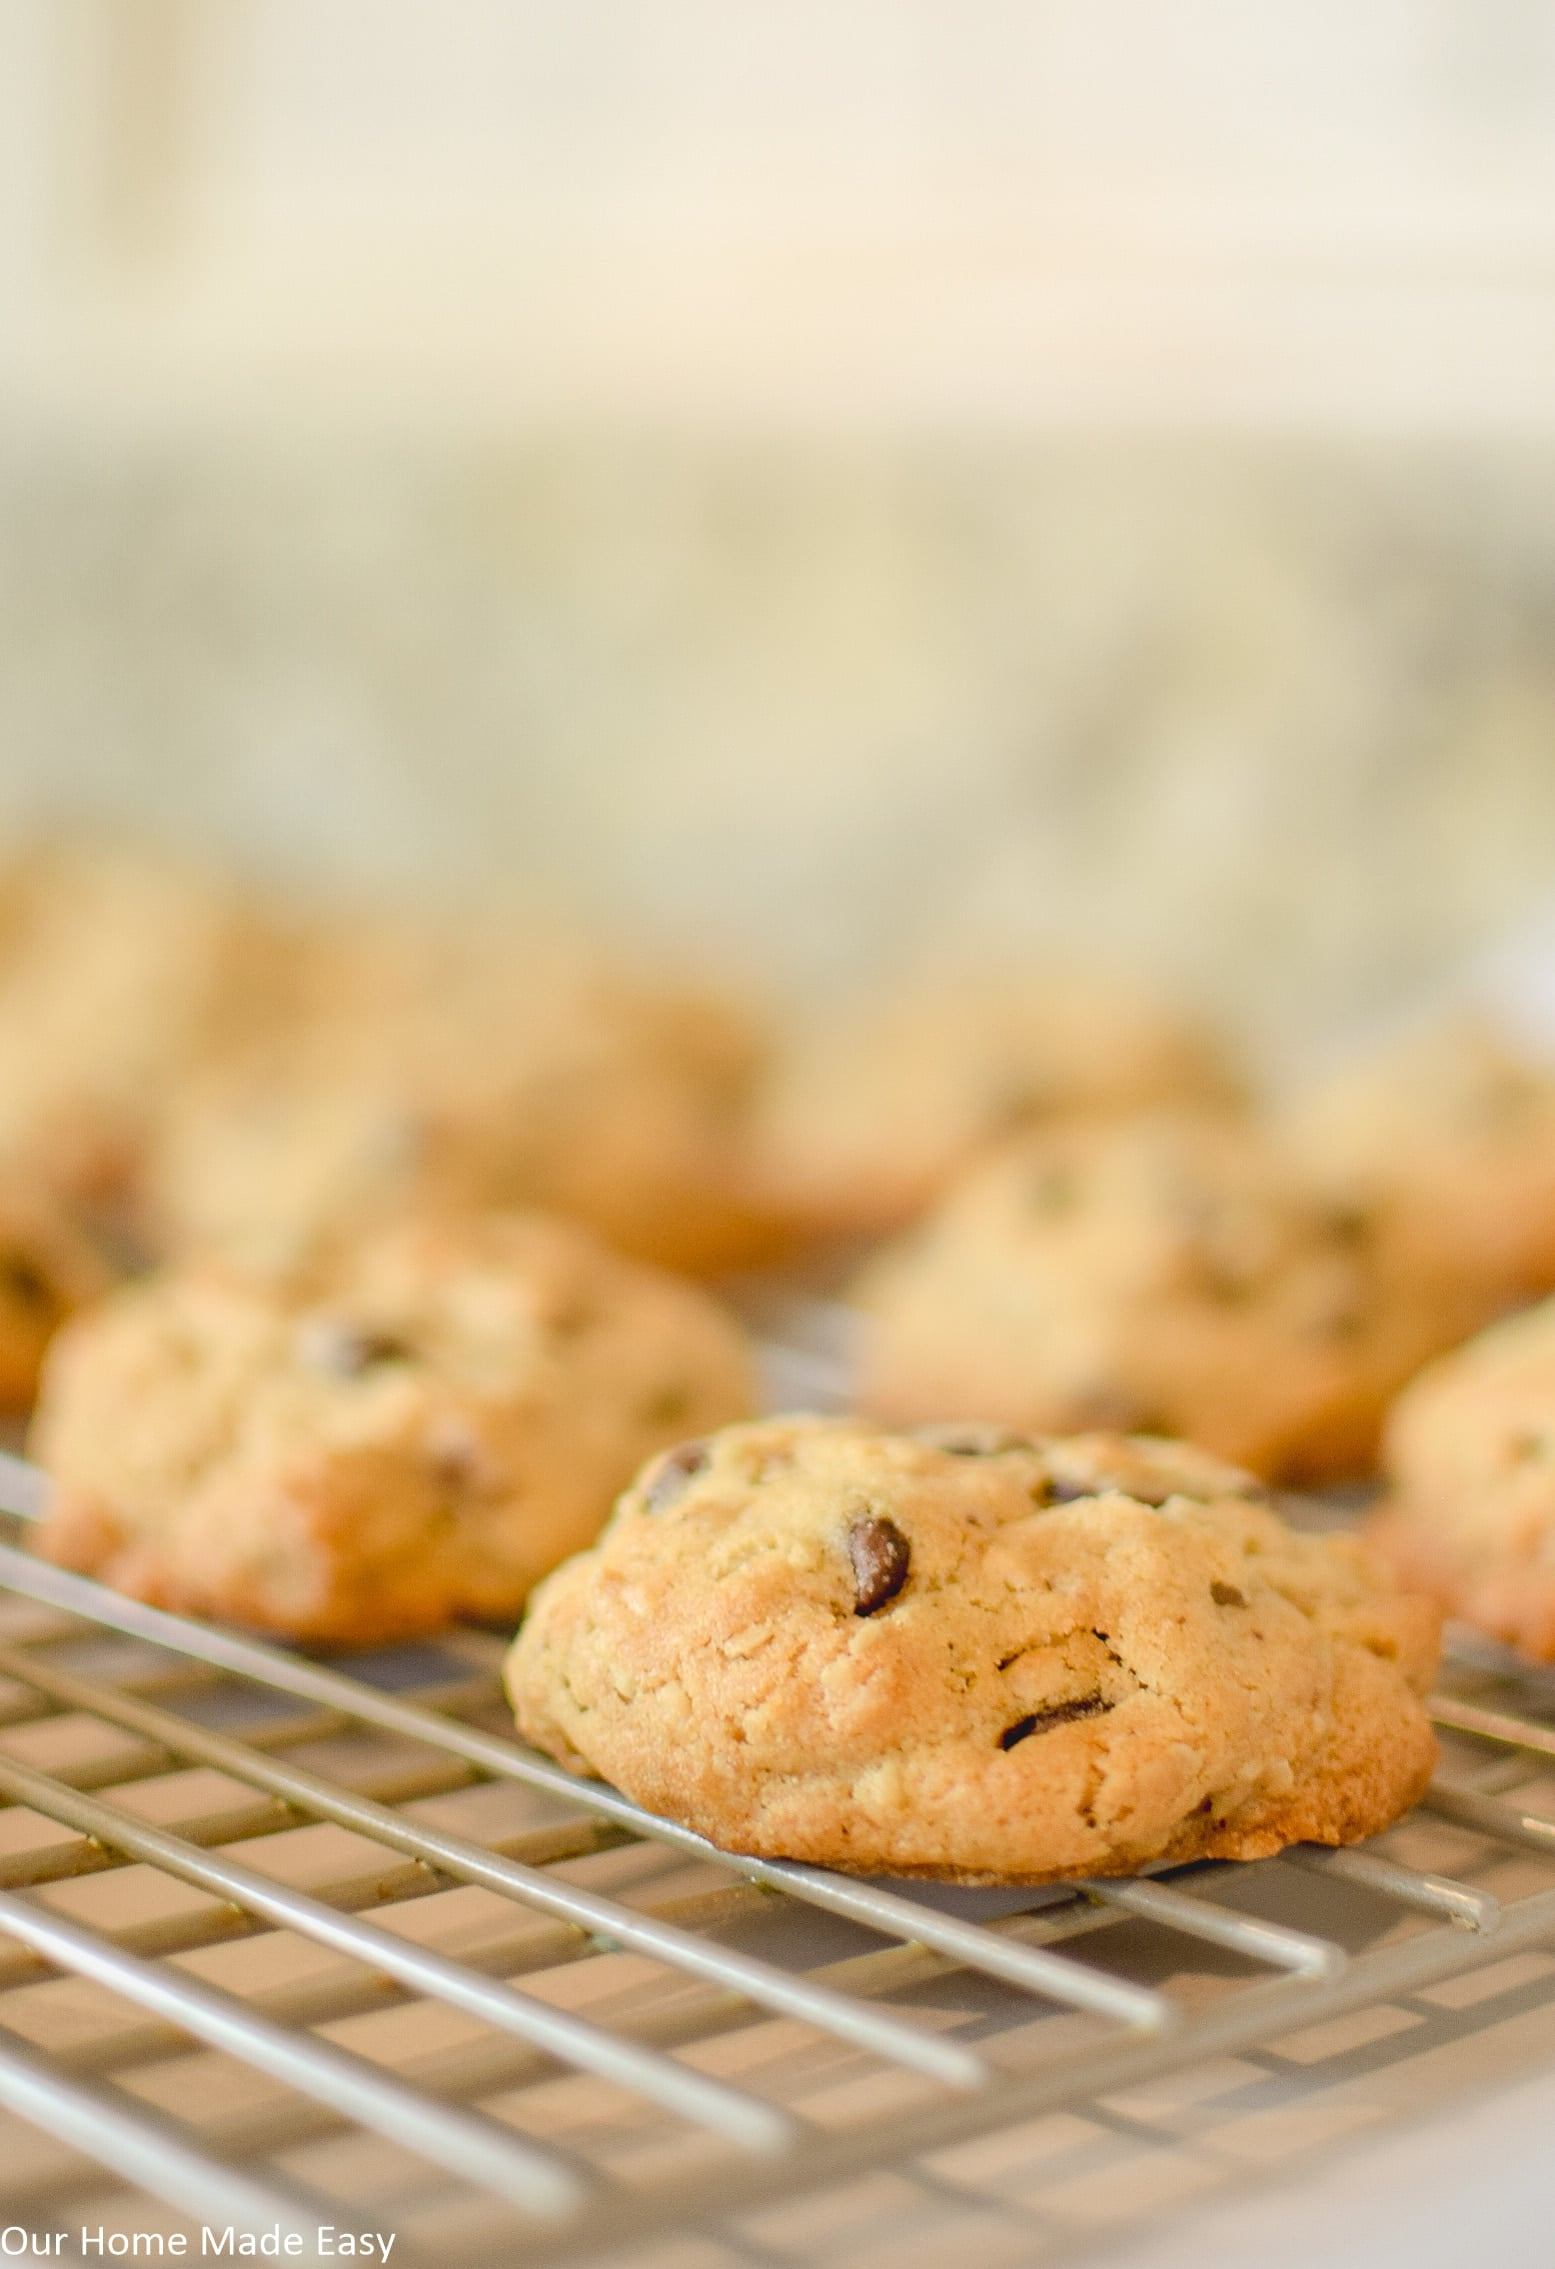 this cowboy cookie recipe is a simple, sweet, and nutty chocolate chip cookie that's too easy to make